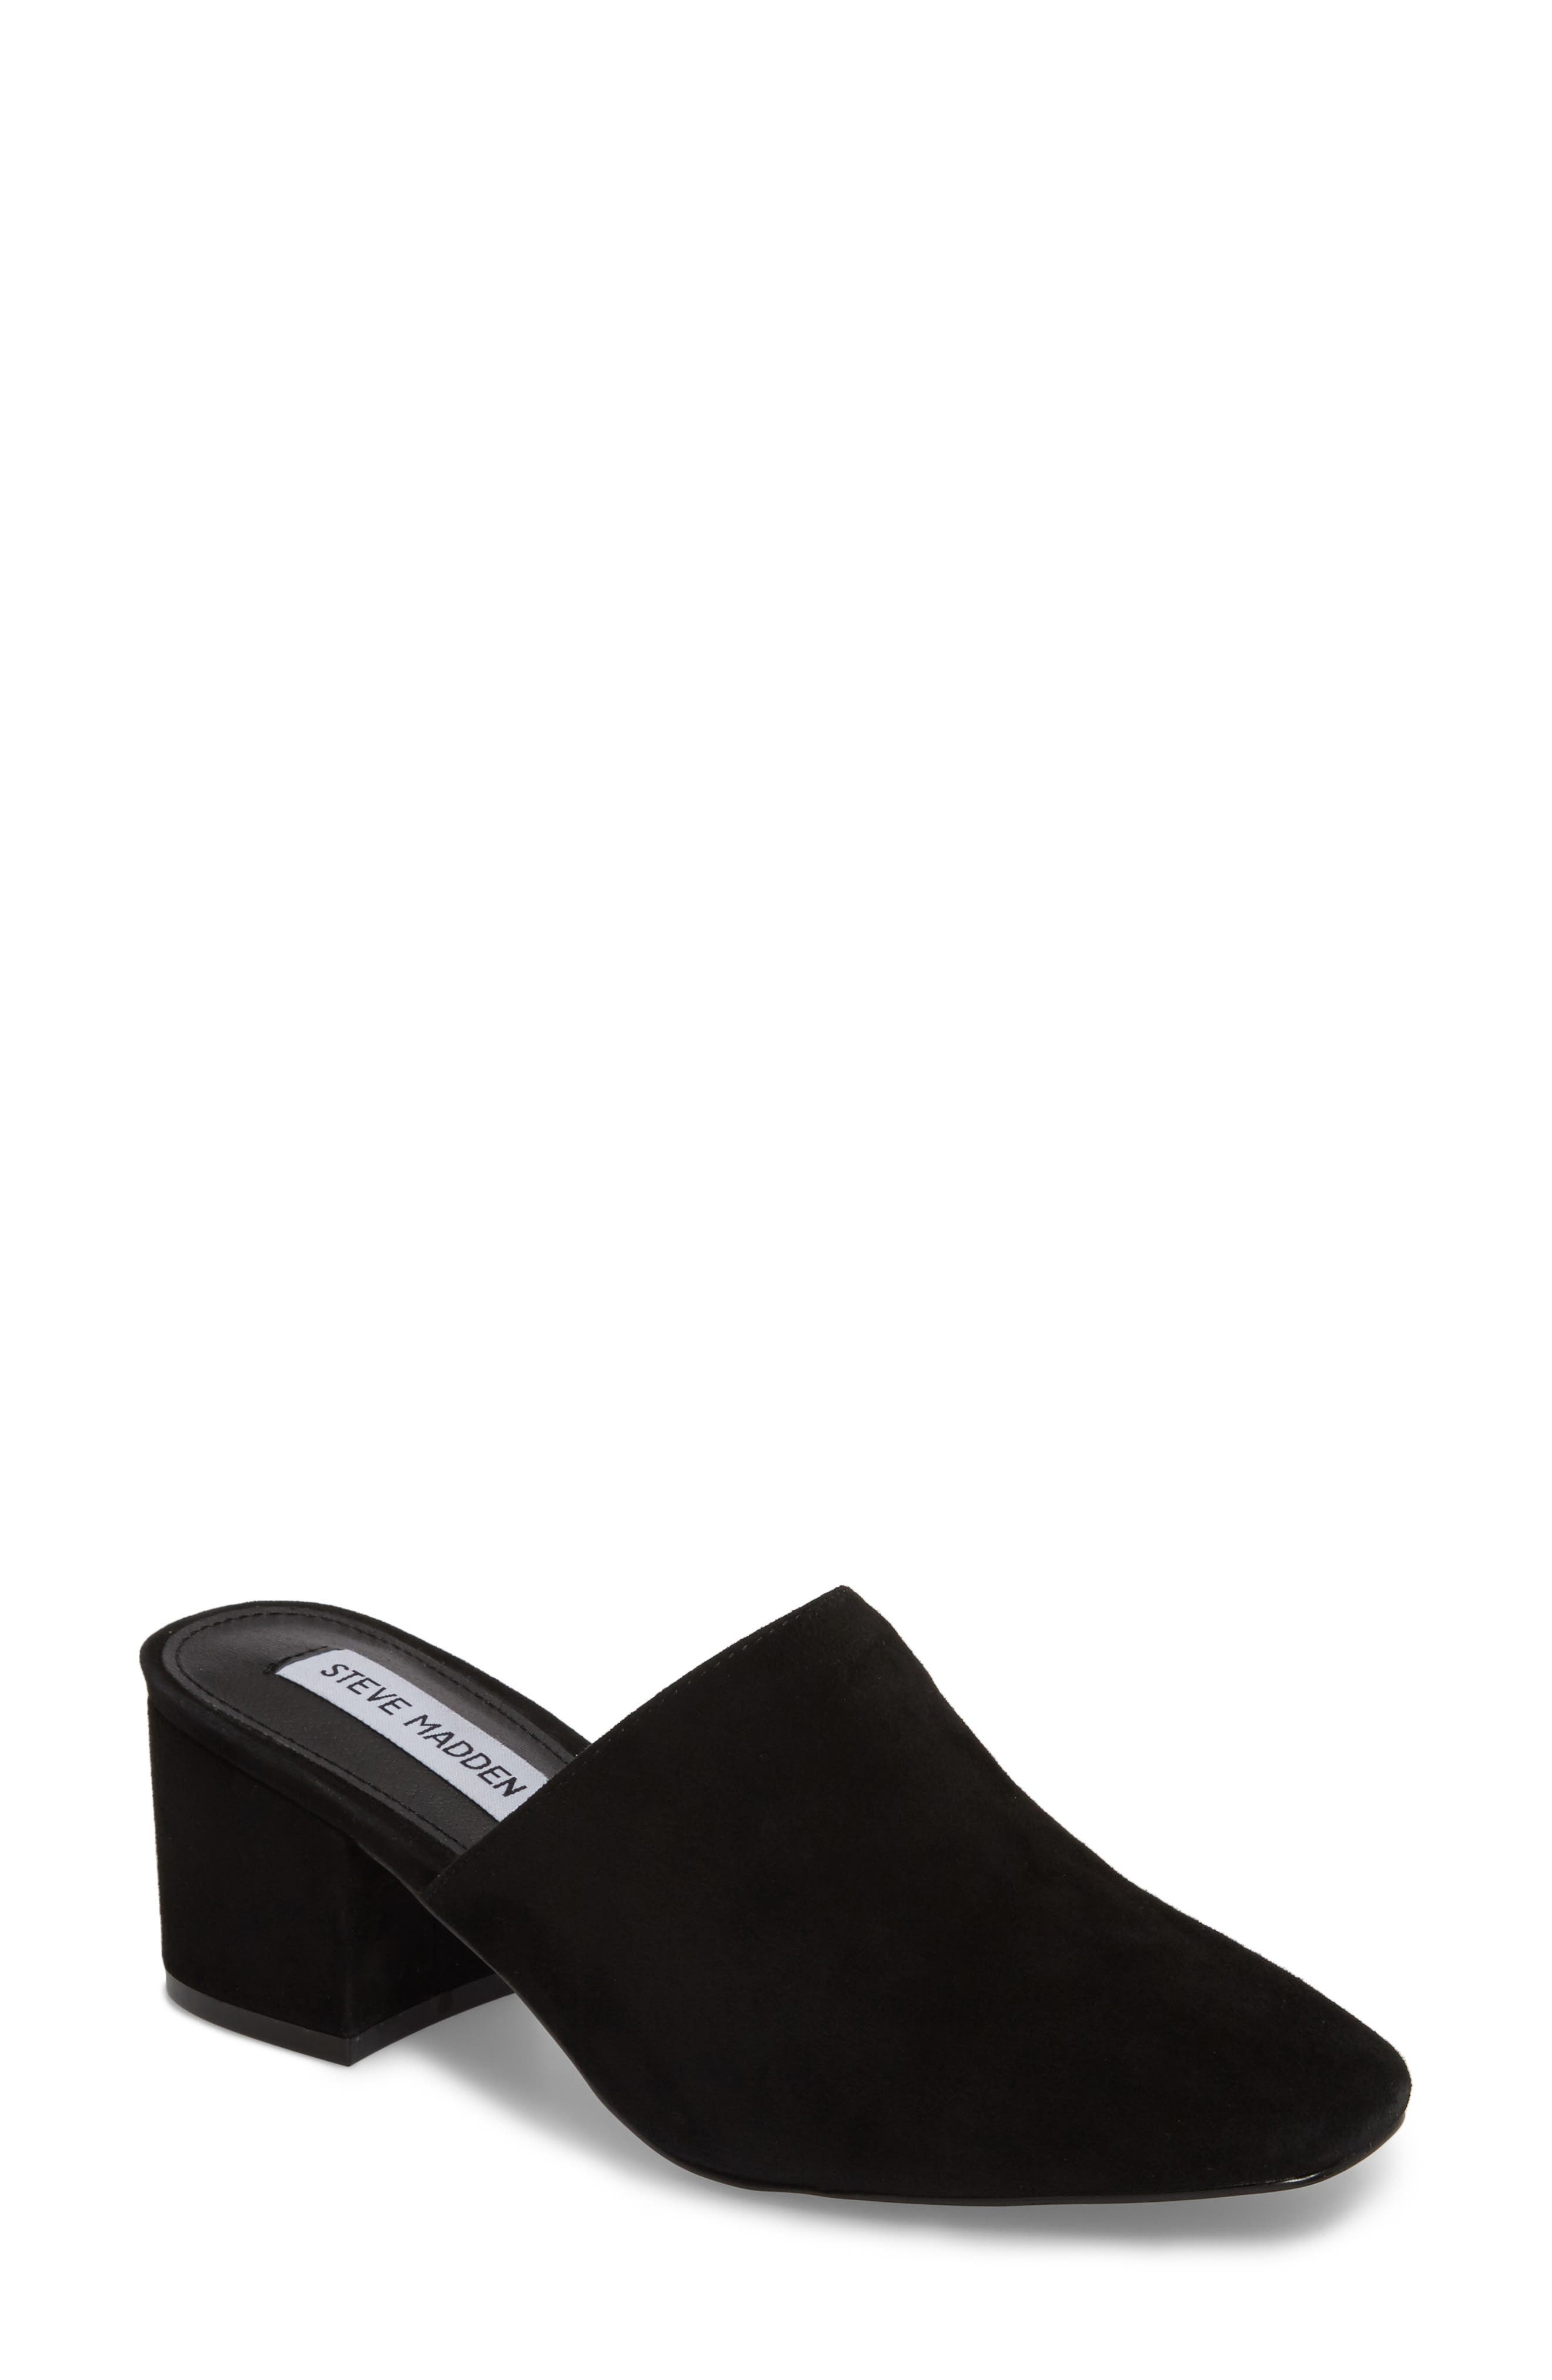 Alternate Image 1 Selected - Steve Madden Notch Mule (Women)